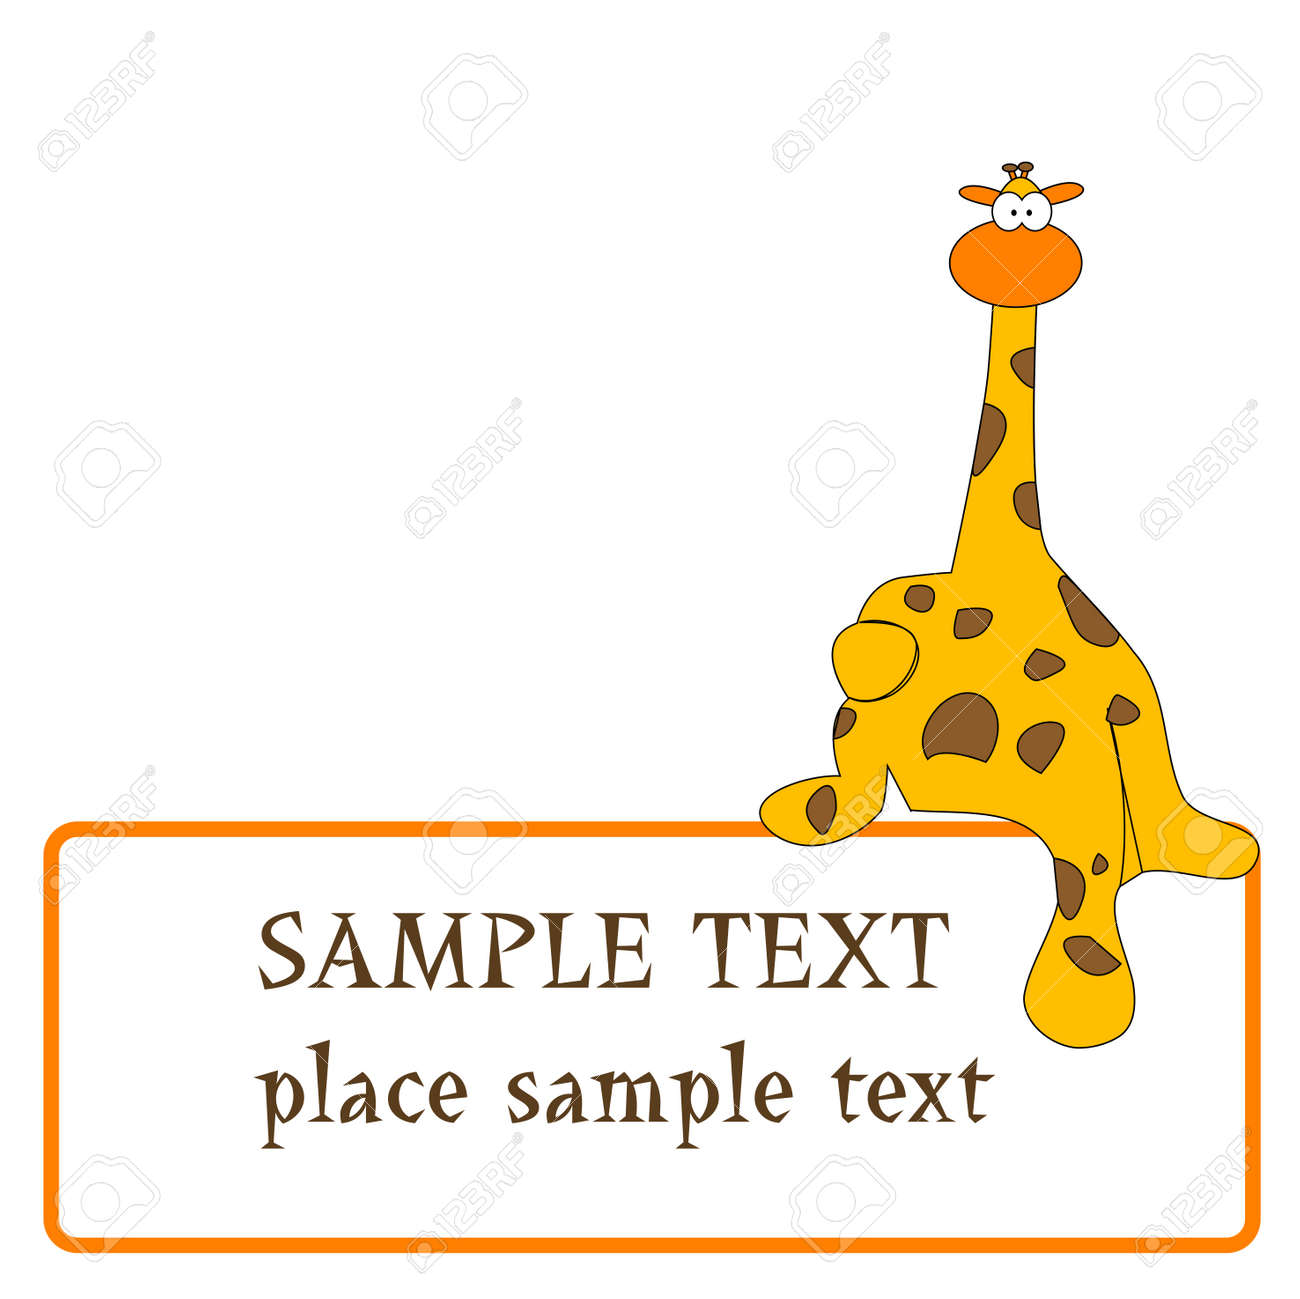 giraffe design with space for text, vector art illustration - 6130390